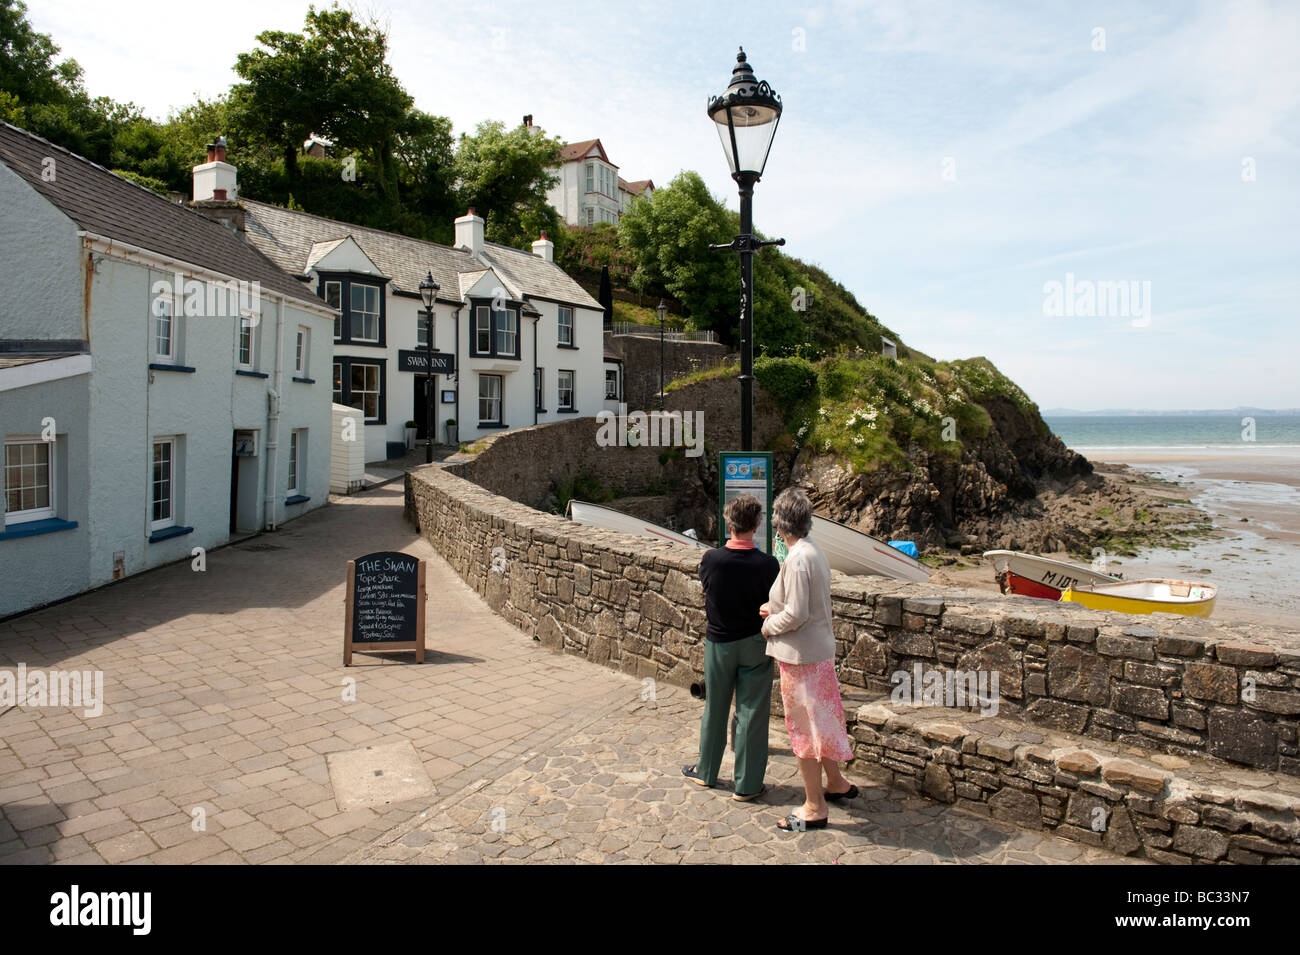 two people by the seashore on a summer afternoon Little Haven Pembrokeshire Coast National Park south west wales - Stock Image